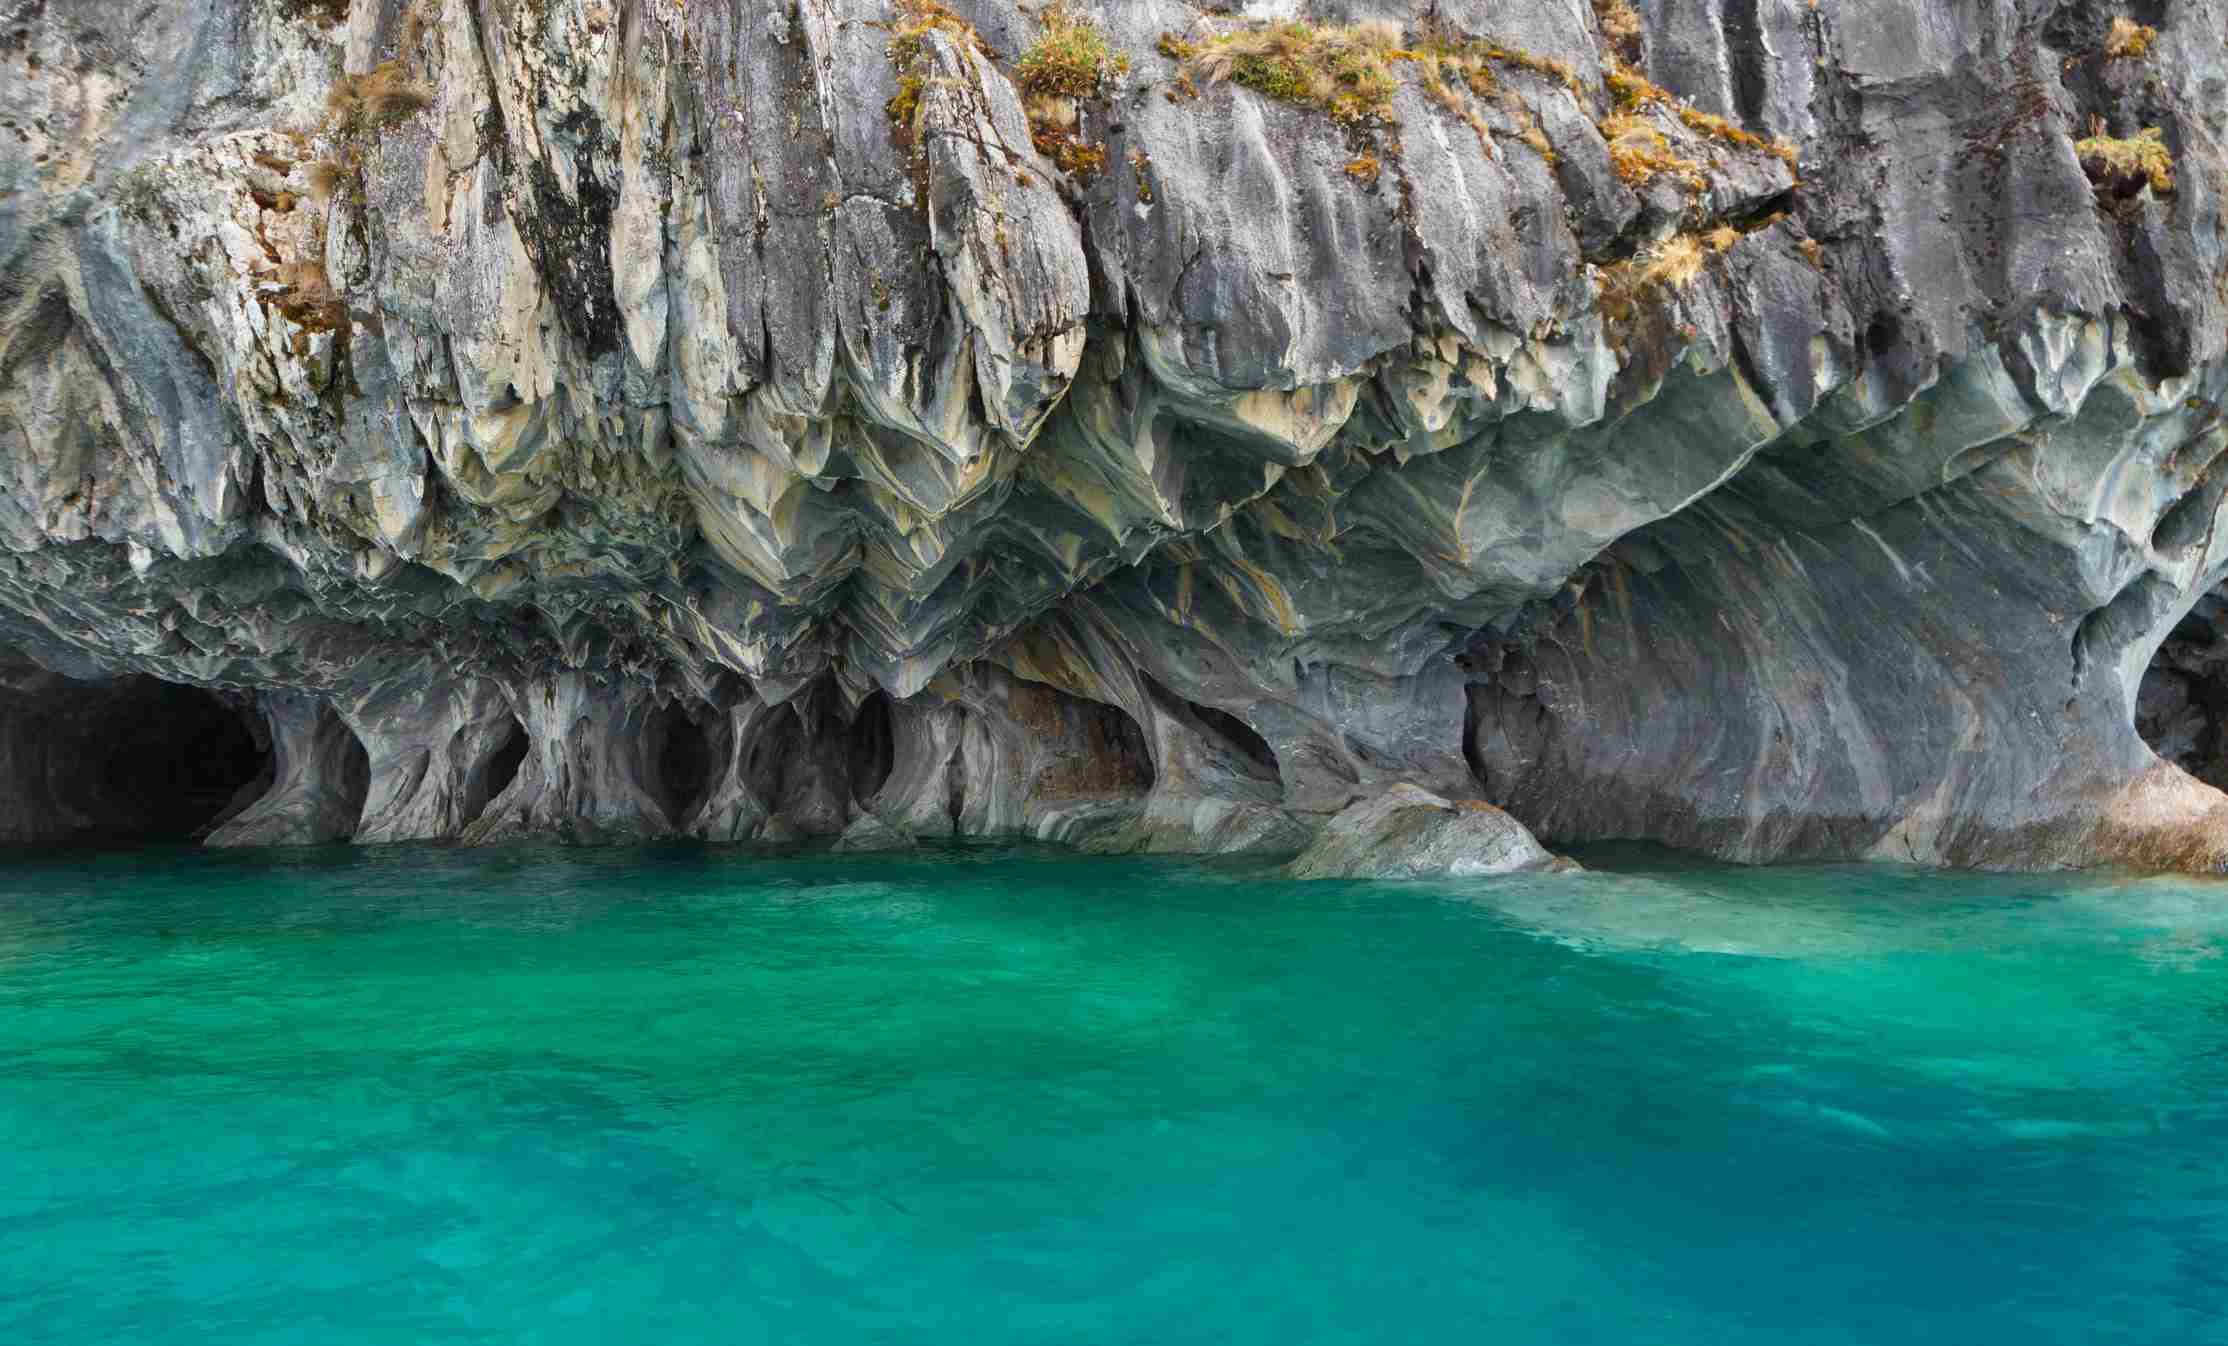 Marble caves over General Carrera Lake, Puerto Tranquilo, Chile.